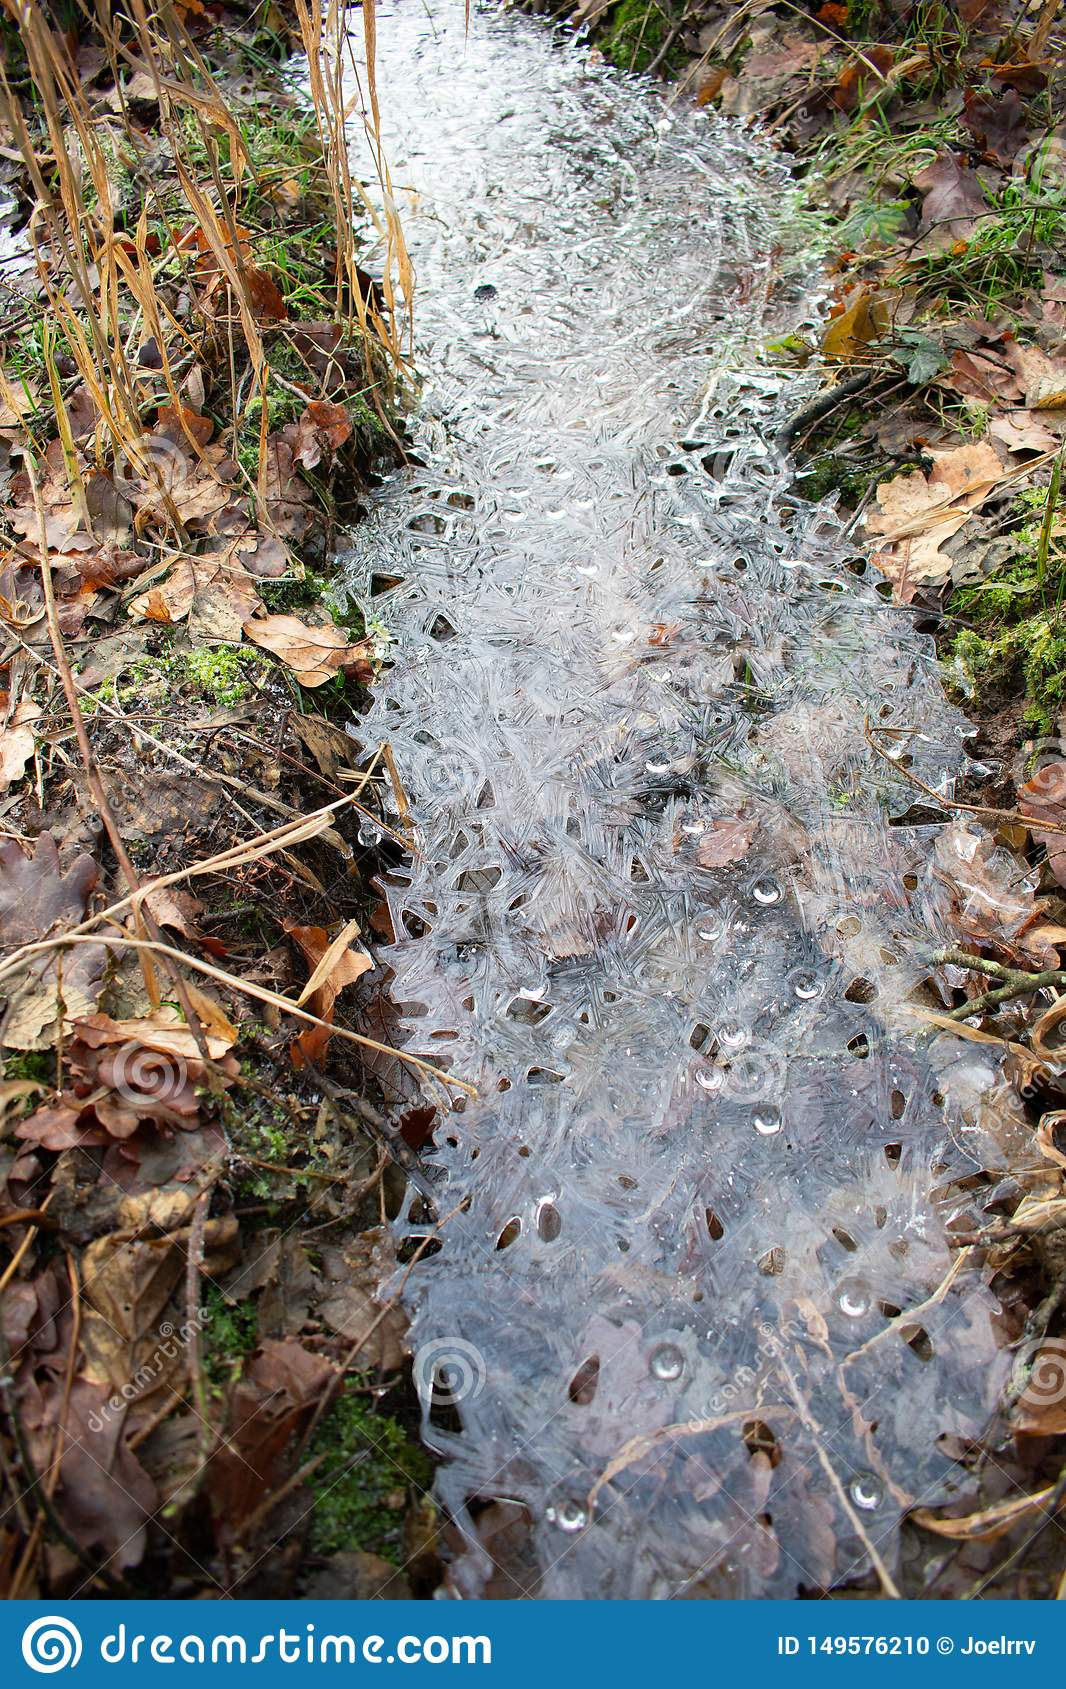 Frozen water puddle in autumn forest